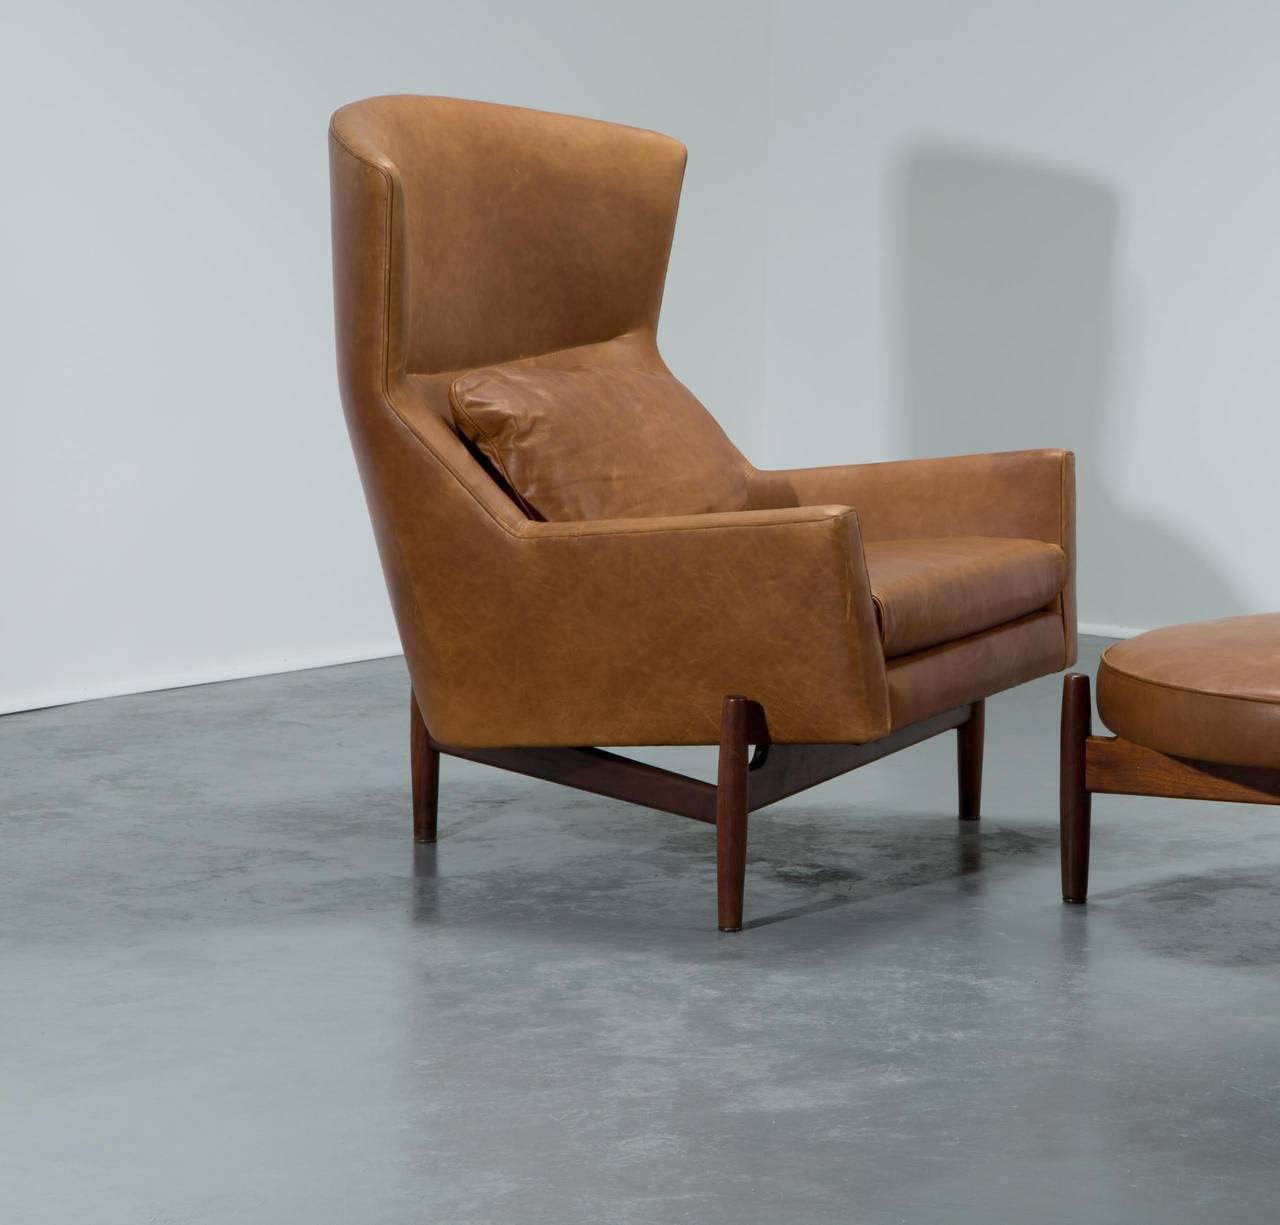 Jens Risom Side Chair Risom Lounge Chair Leather Vintage Leather Lounge Chair By Jens